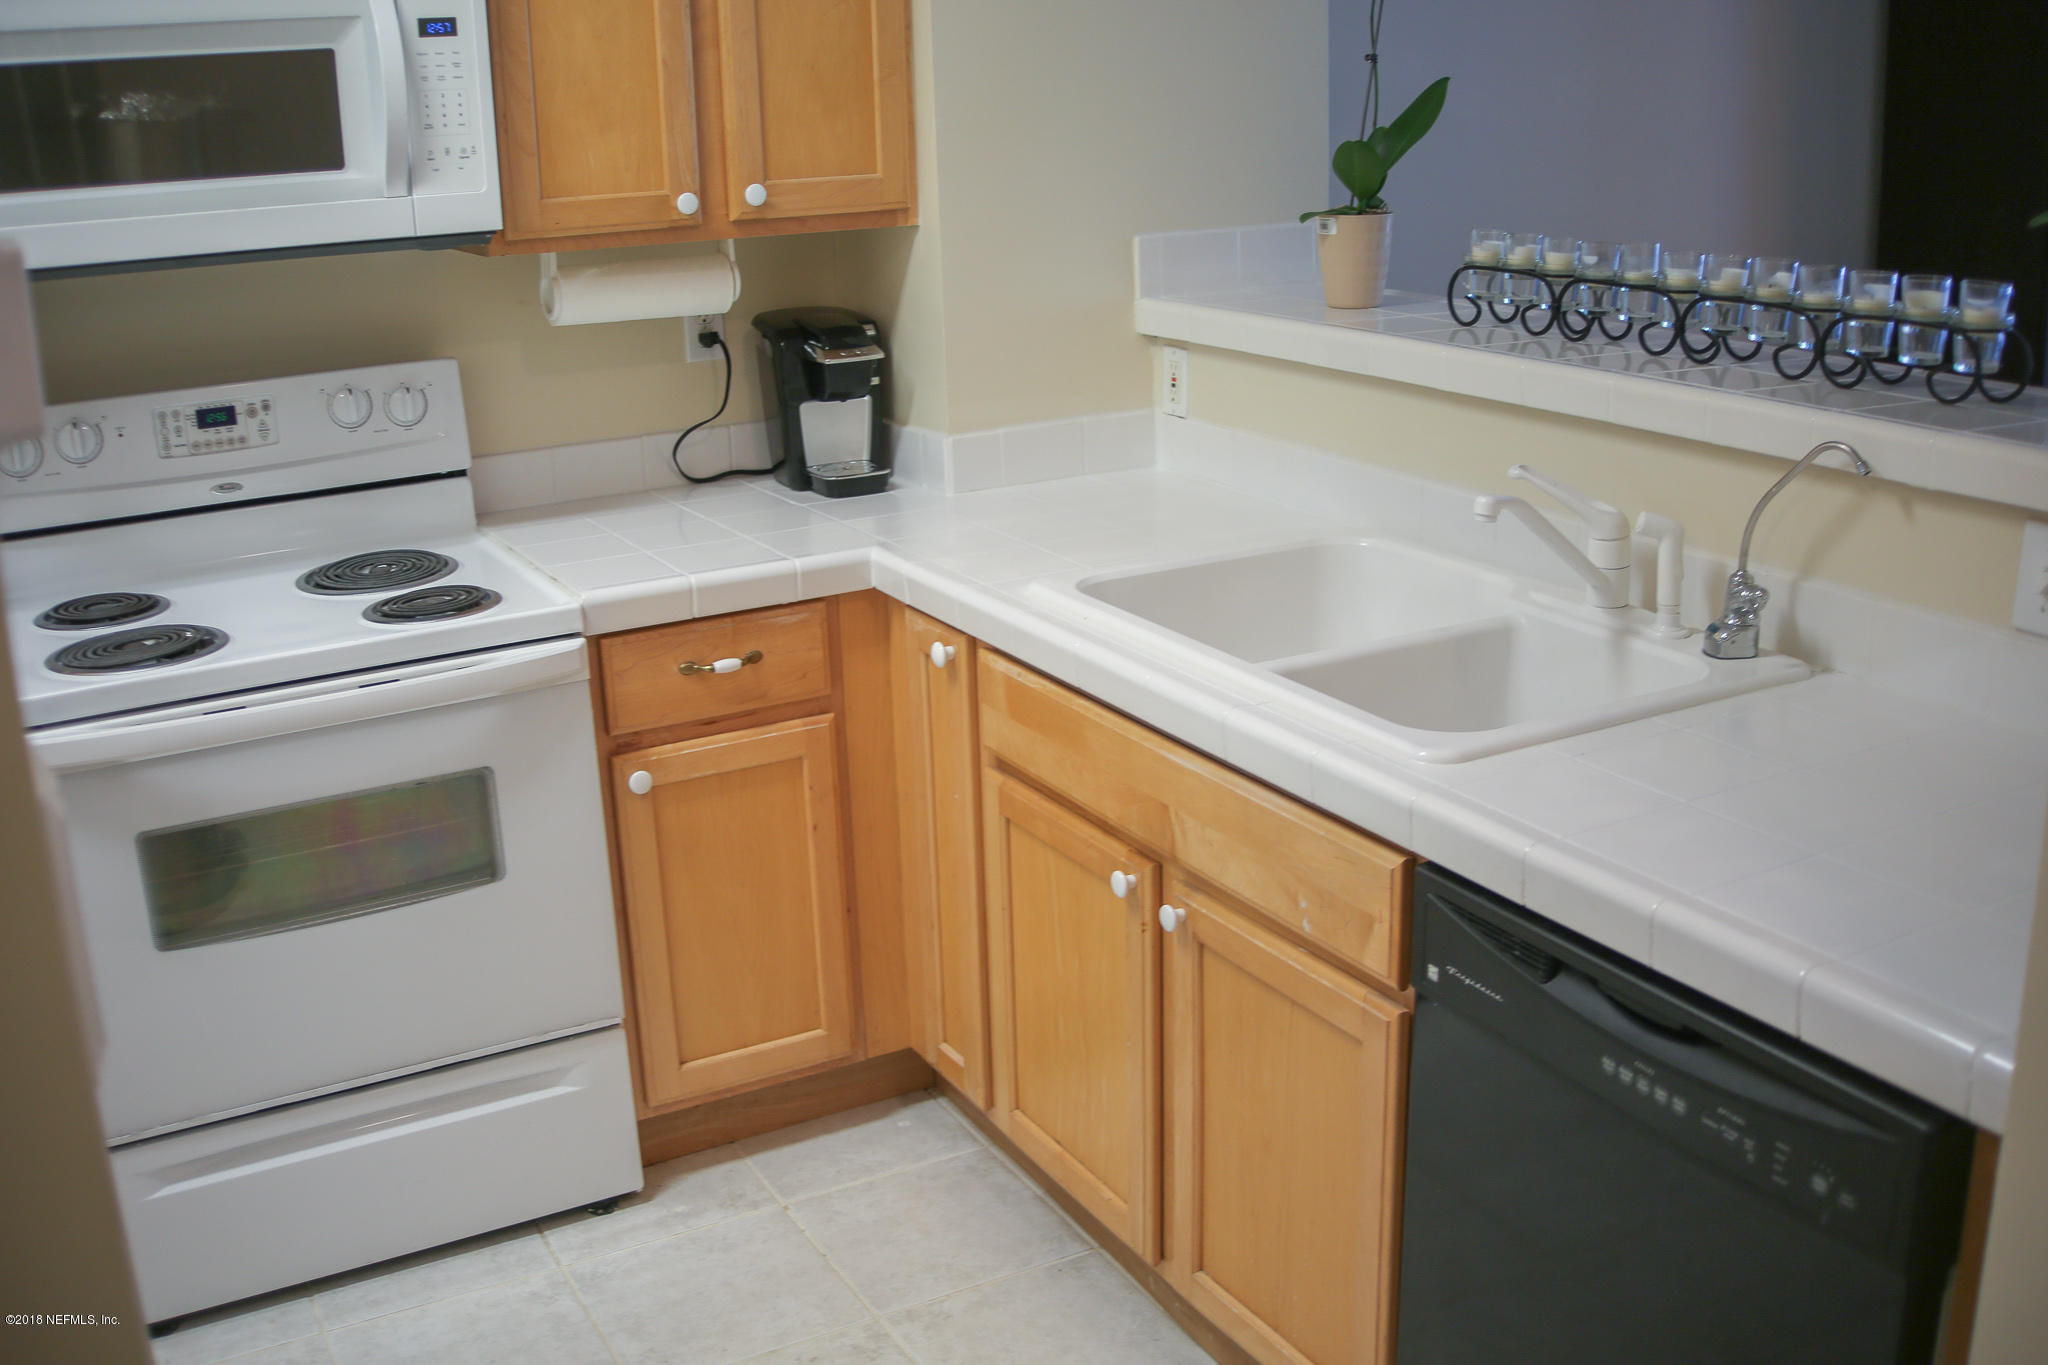 5424 STANFORD, JACKSONVILLE, FLORIDA 32207, 3 Bedrooms Bedrooms, ,2 BathroomsBathrooms,Residential - townhome,For sale,STANFORD,943259